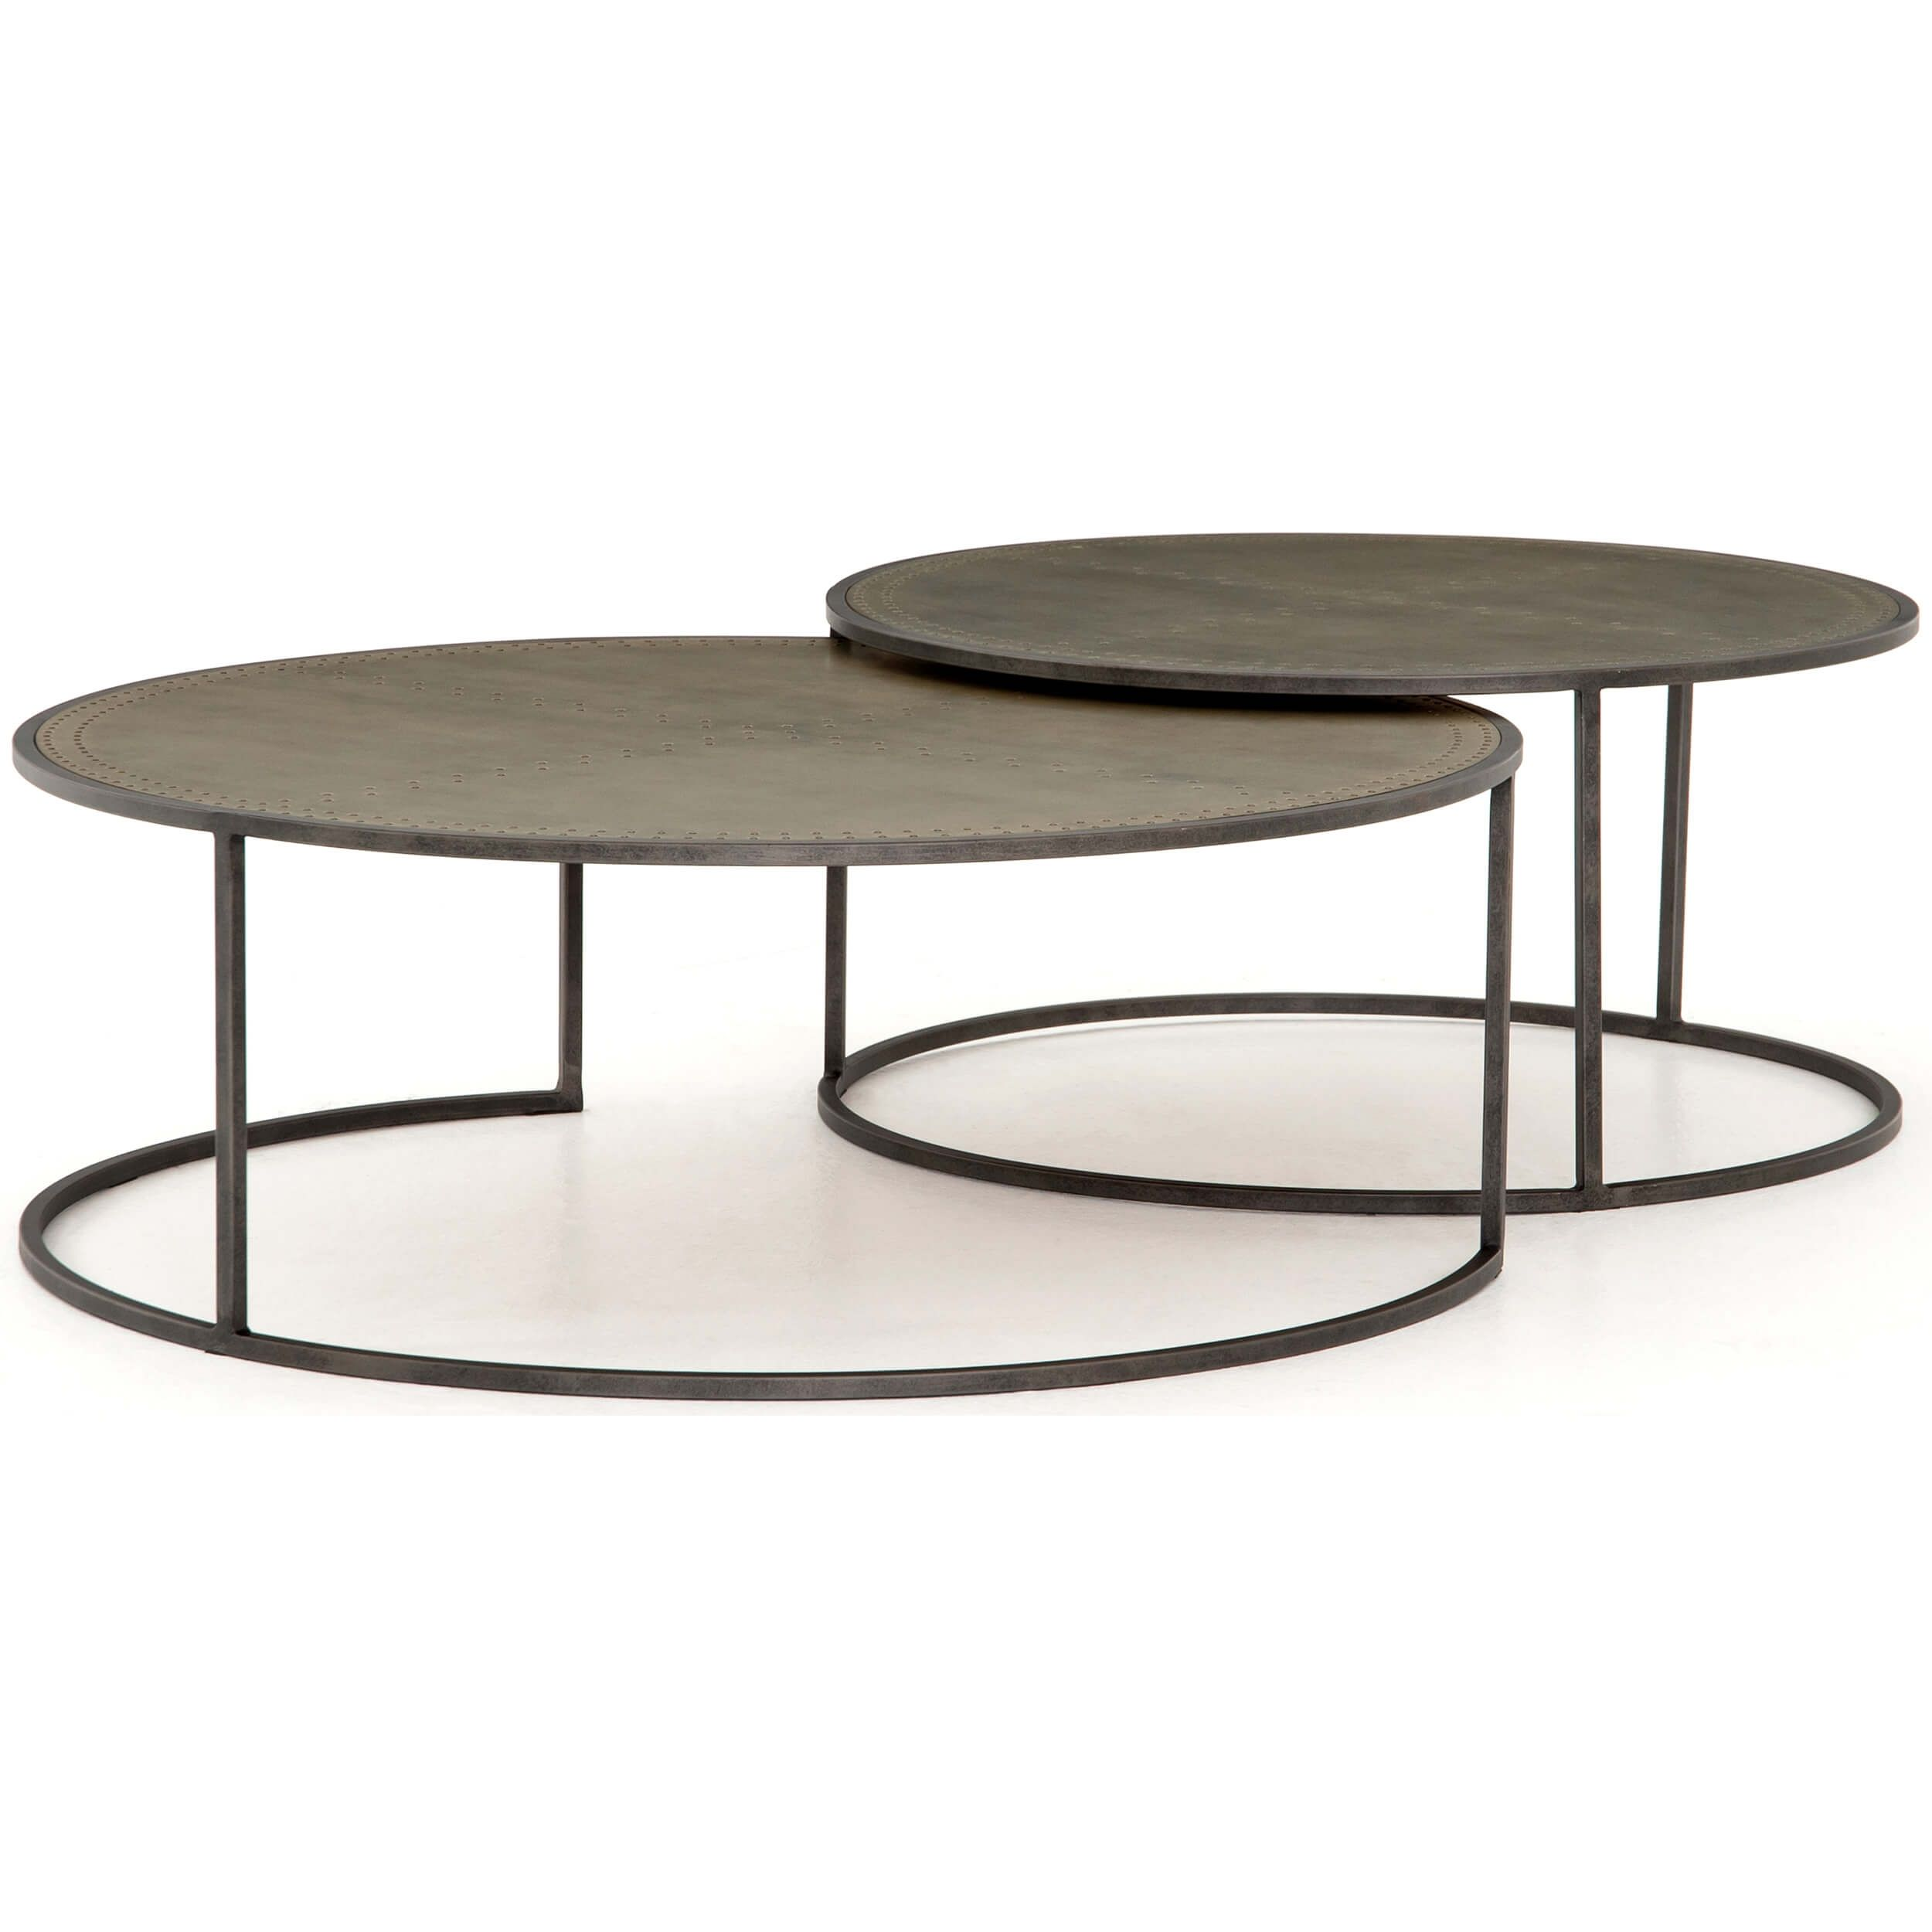 Catalina Nesting Coffee Table Galvanized Nesting Coffee Tables Coffee Table Round Nesting Coffee Tables